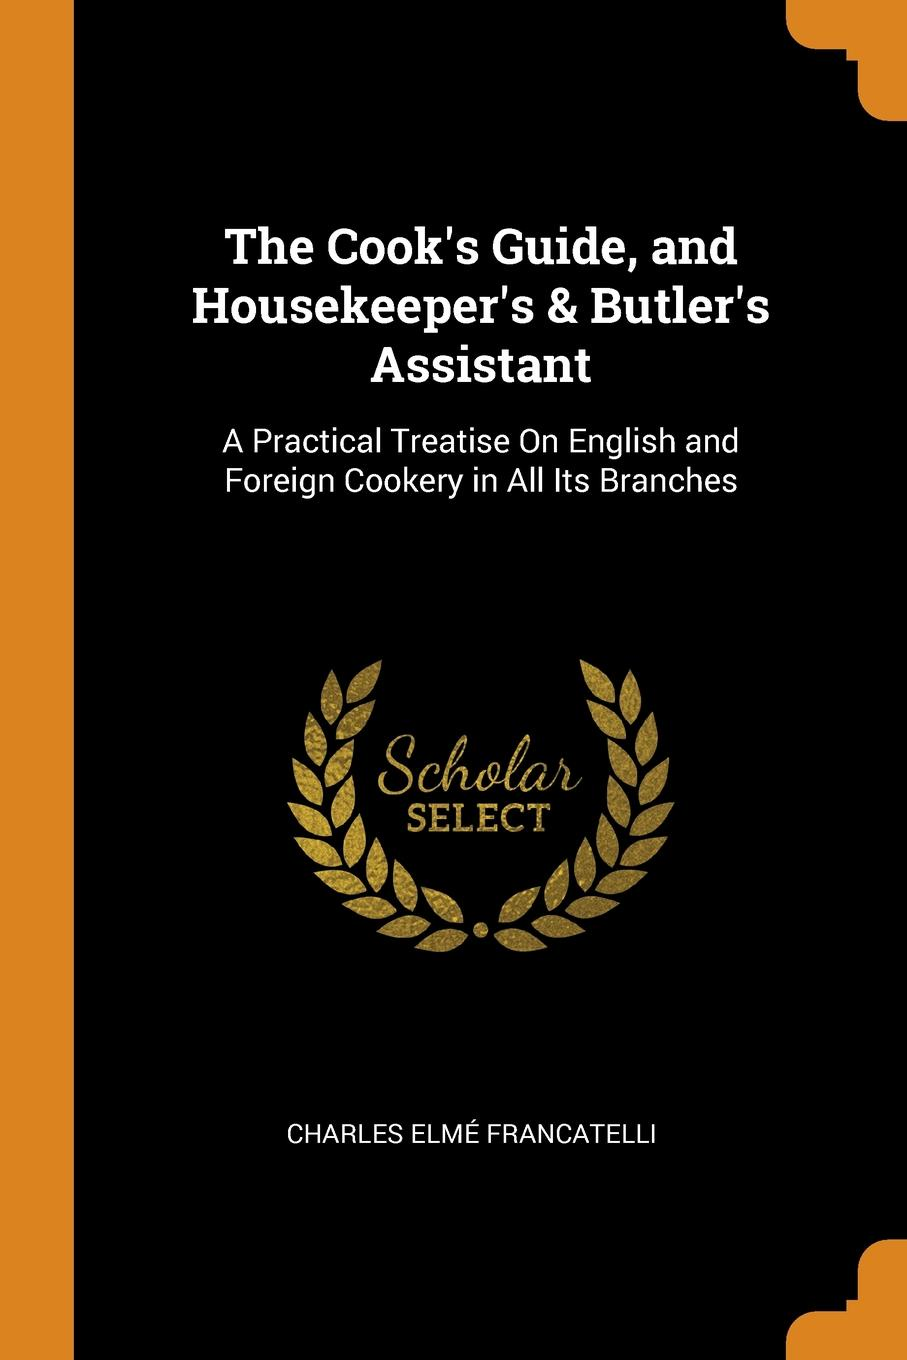 Charles Elmé Francatelli. The Cook.s Guide, and Housekeeper.s . Butler.s Assistant. A Practical Treatise On English and Foreign Cookery in All Its Branches